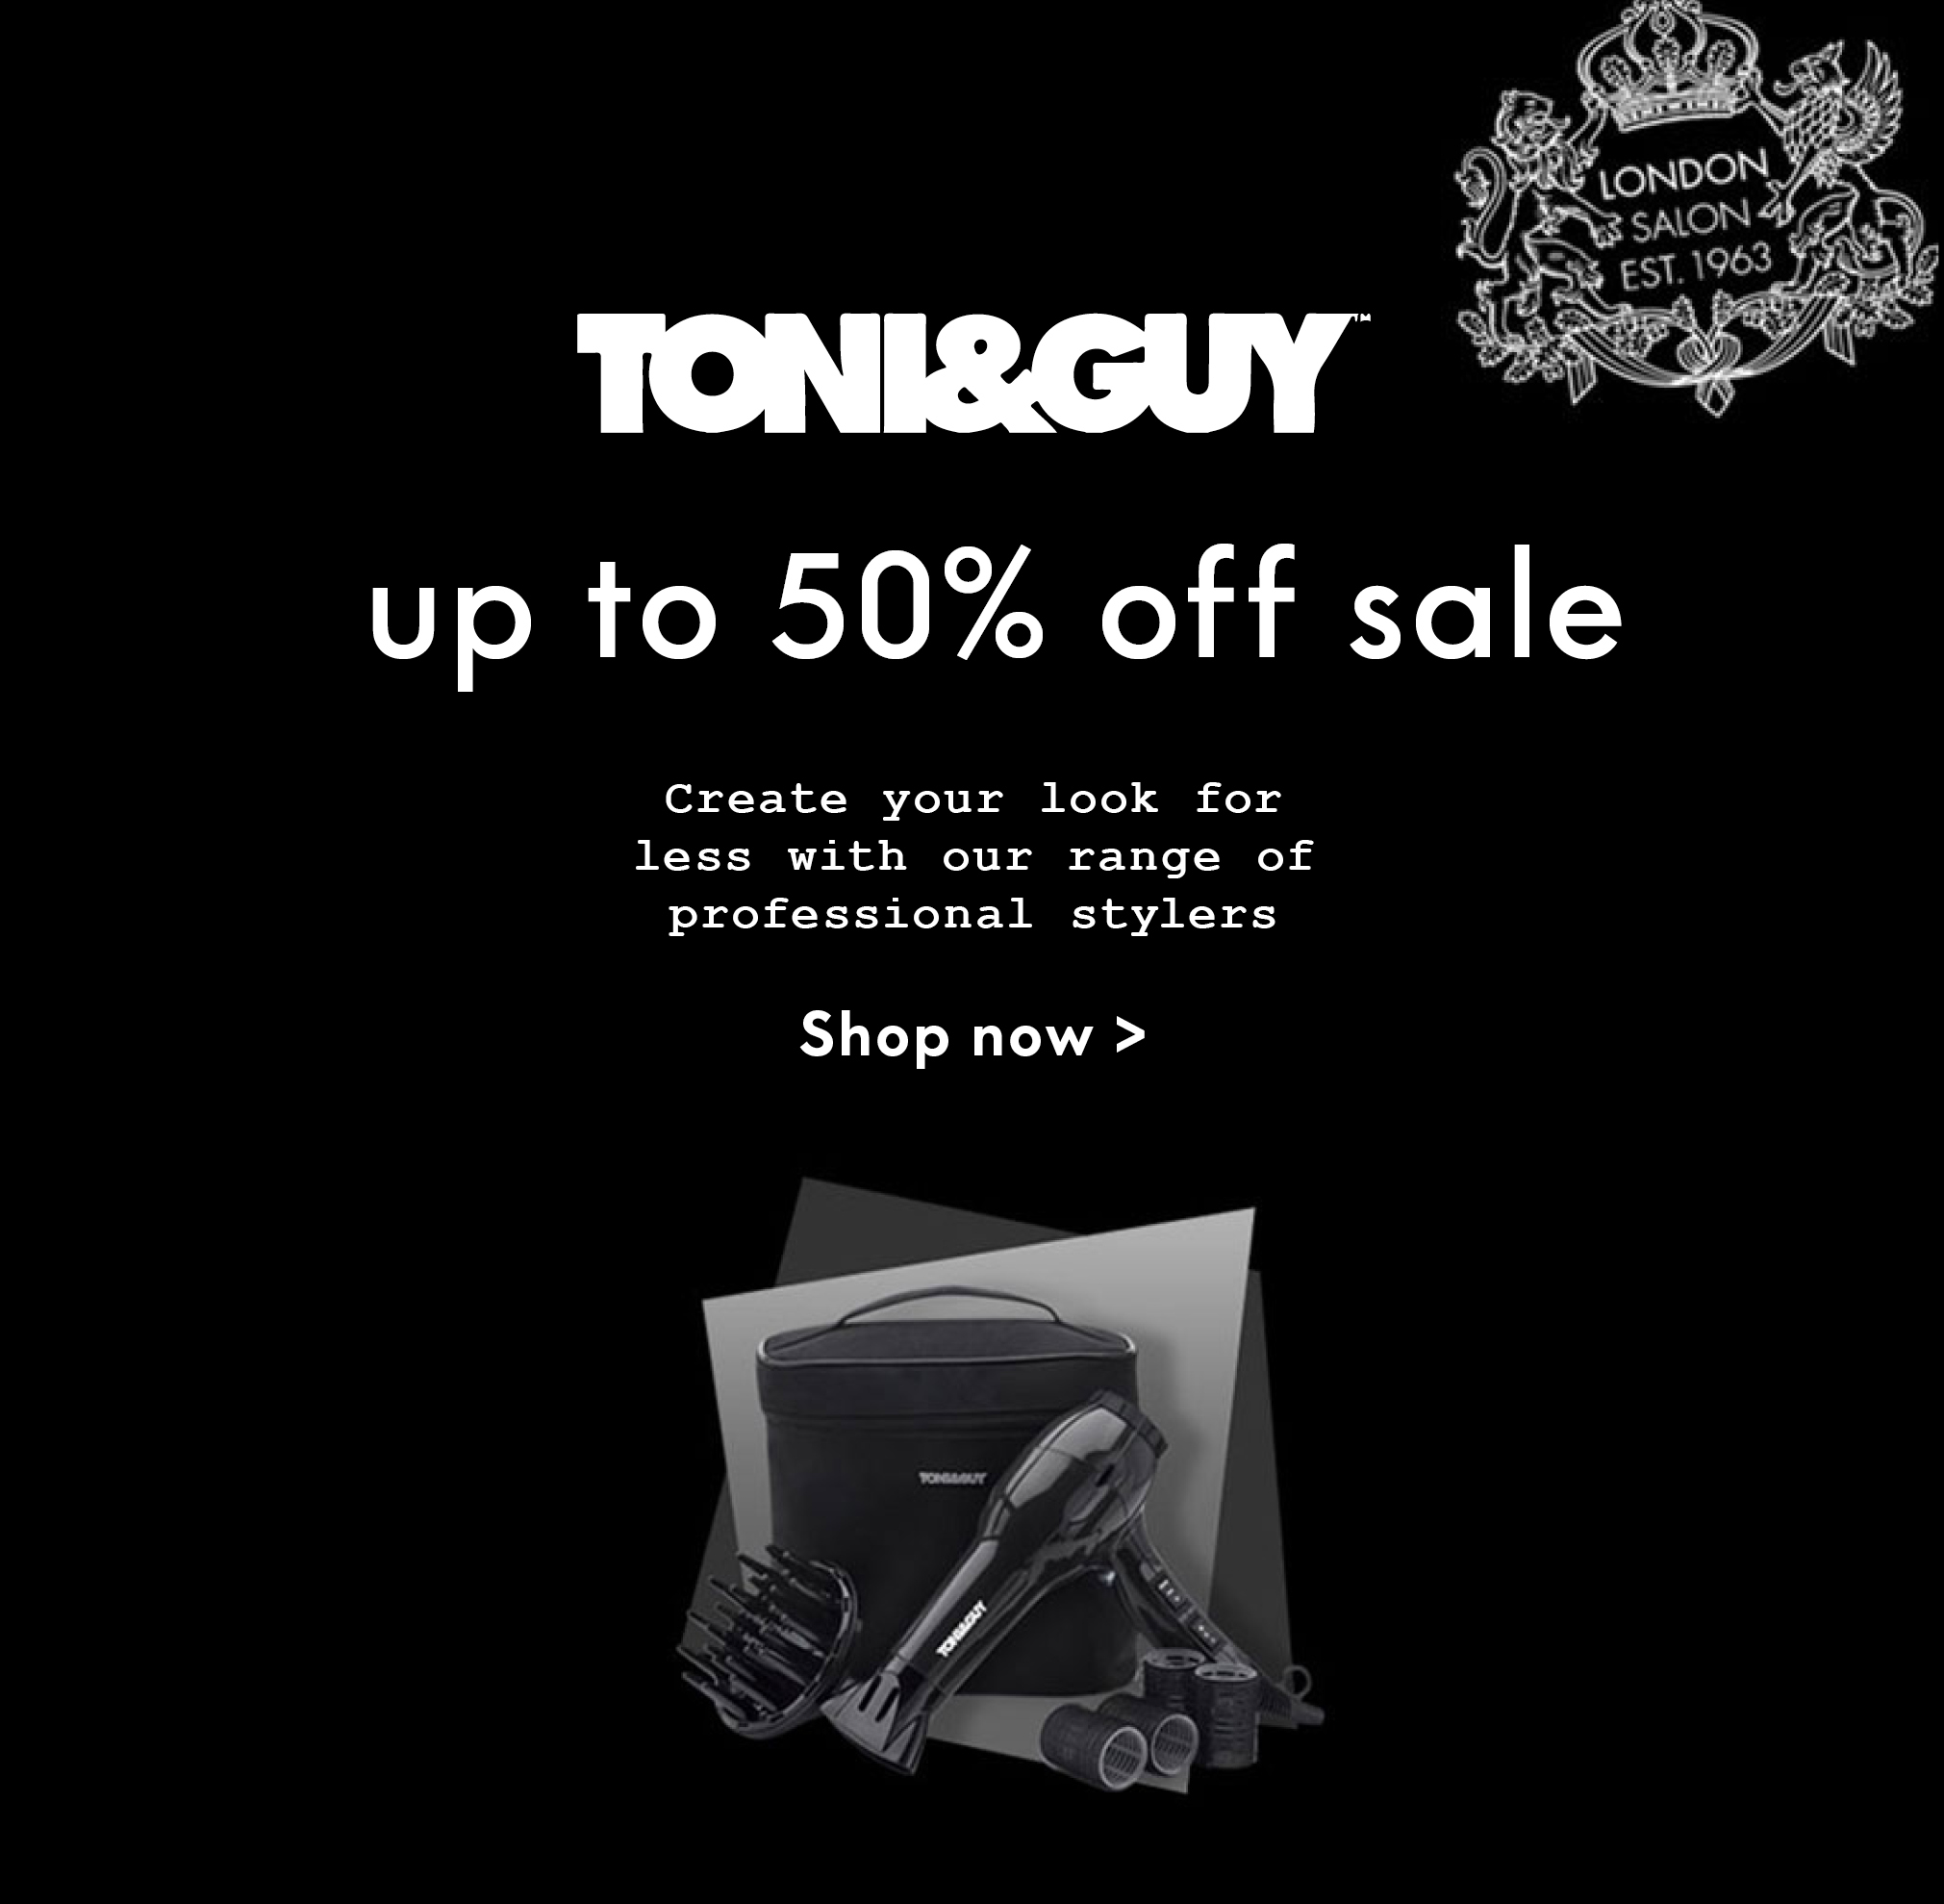 TONI&GUY electrical sale